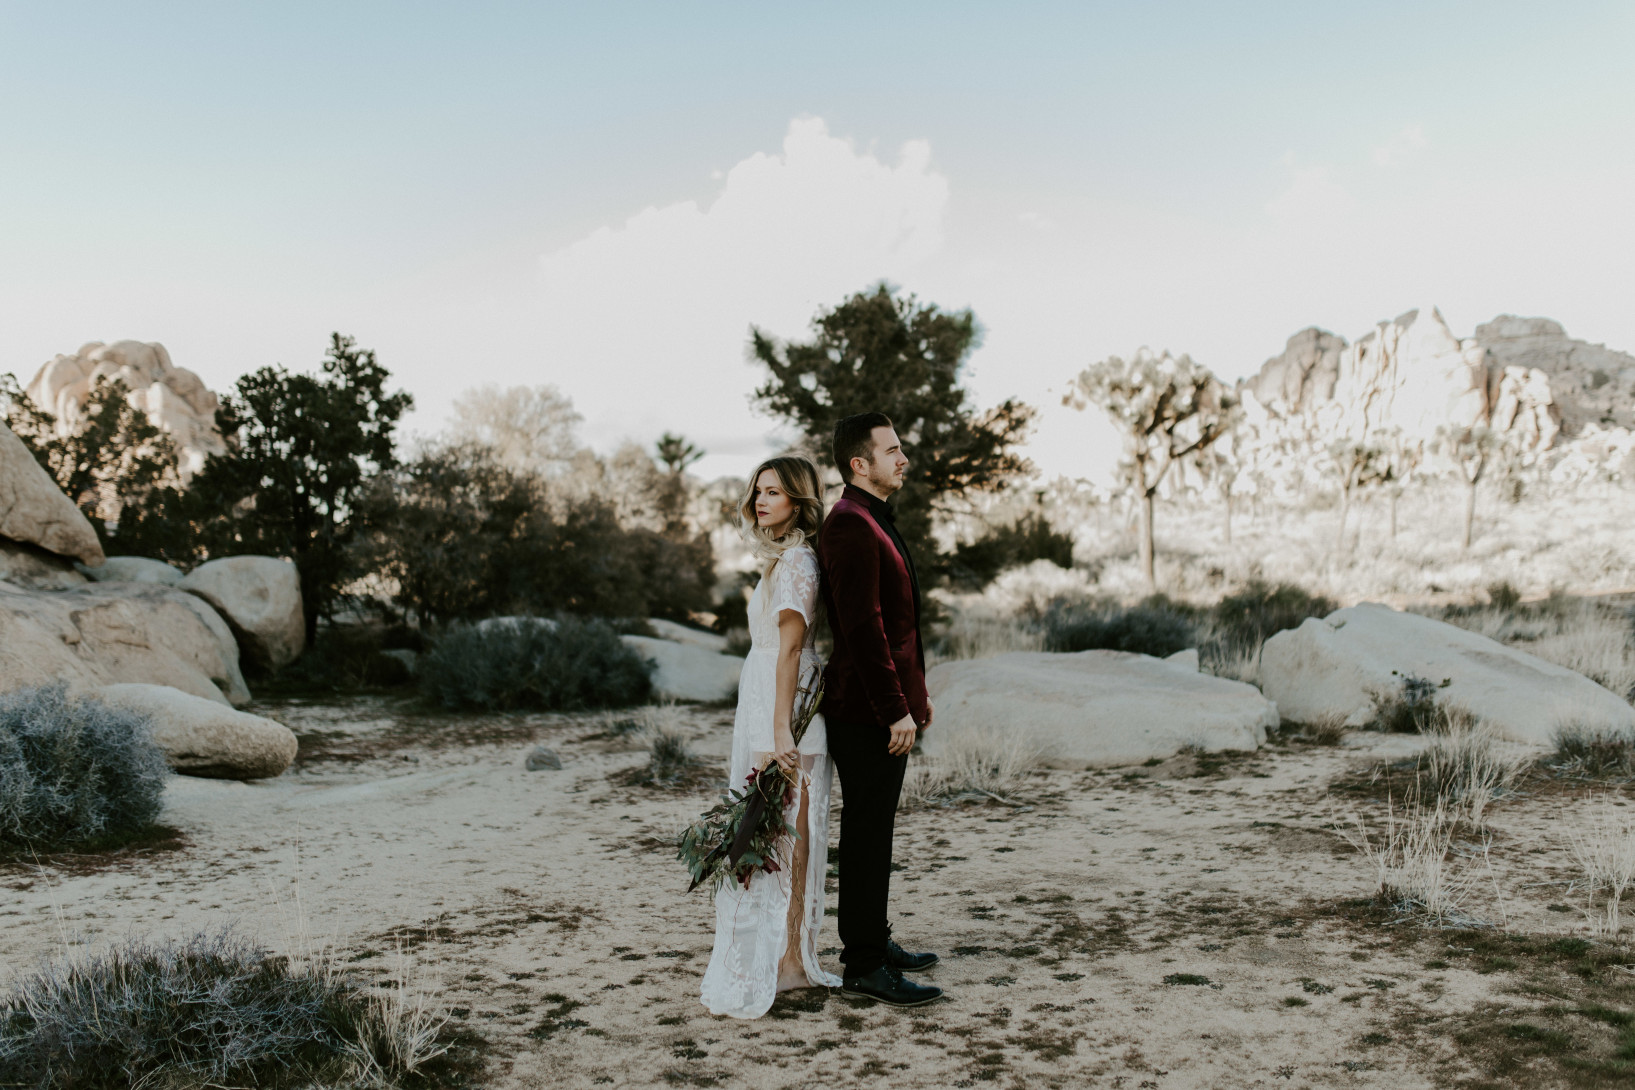 Alyssa and Jeremy stand back to back at Joshua Tree National Park. Elopement wedding photography at Joshua Tree National Park by Sienna Plus Josh.